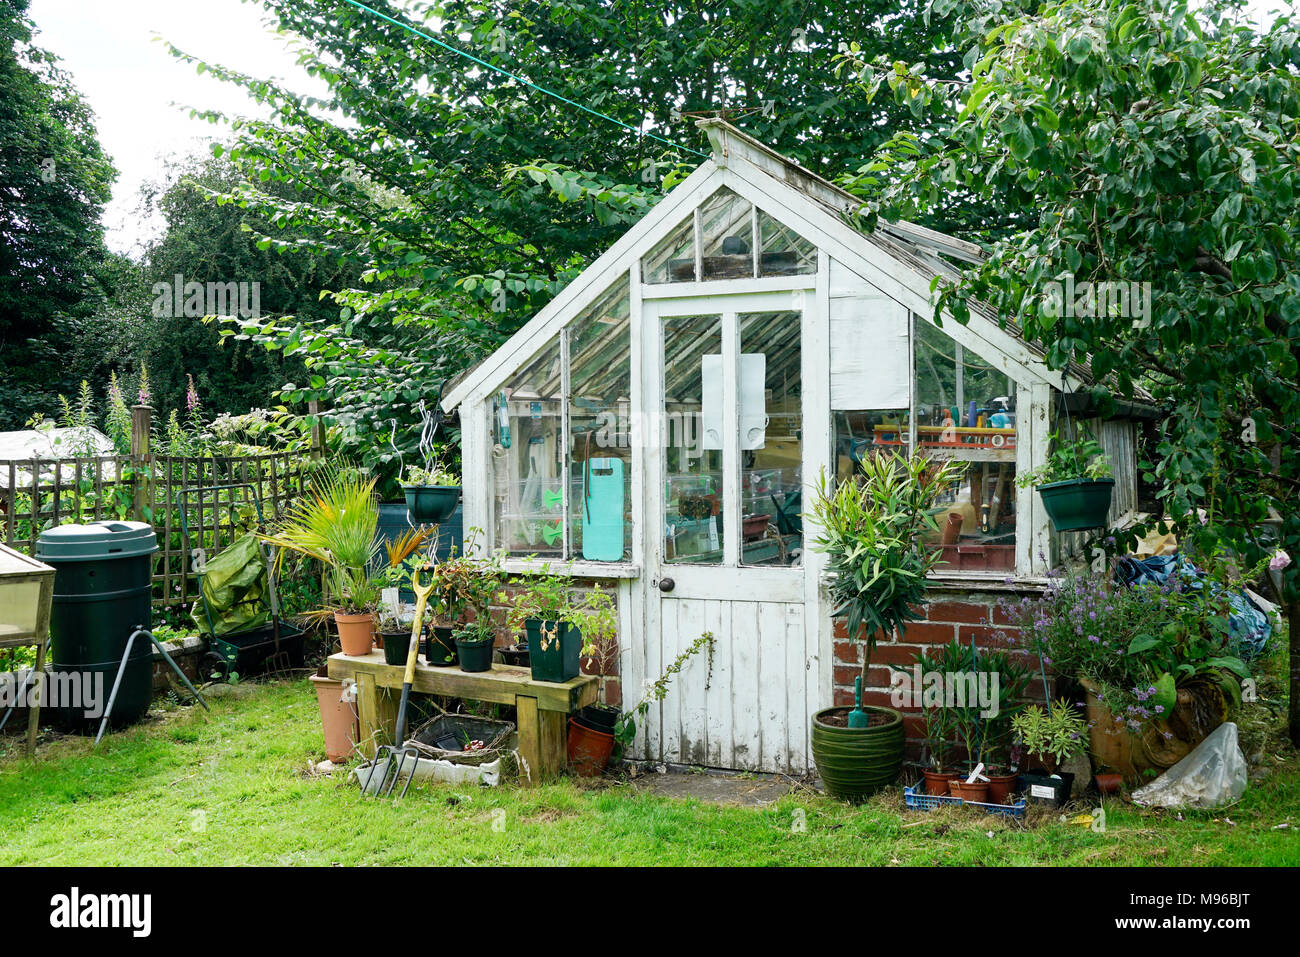 glass and wooden greenhouse in English country garden - Stock Image